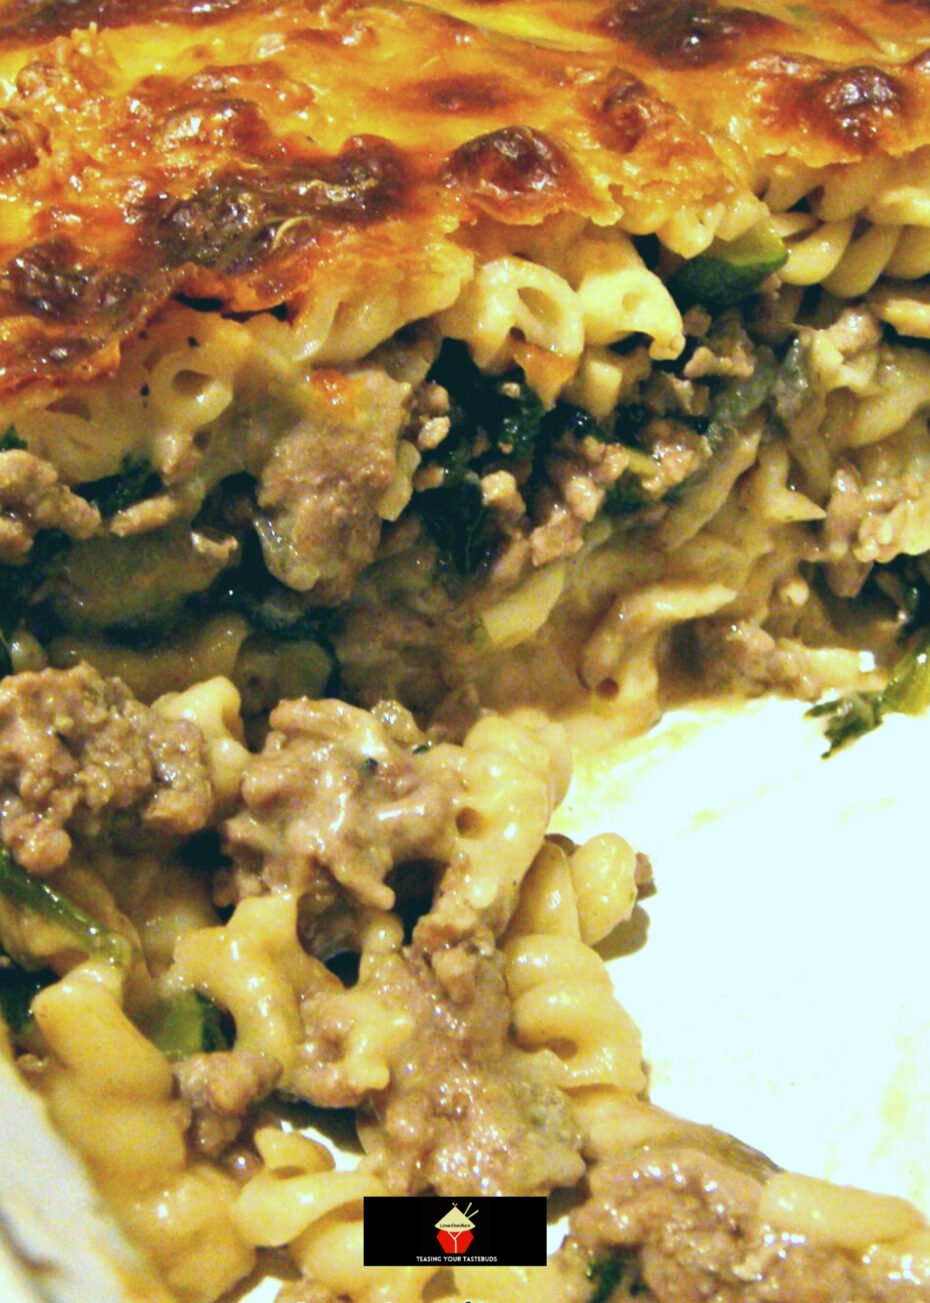 Cheesy Beef and Spinach Pasta Bake. Delicious oven-baked beef and spinach pasta casserole, baked in a rich cheese roux sauce to give you a great dinner. Easy to make and very tasty!